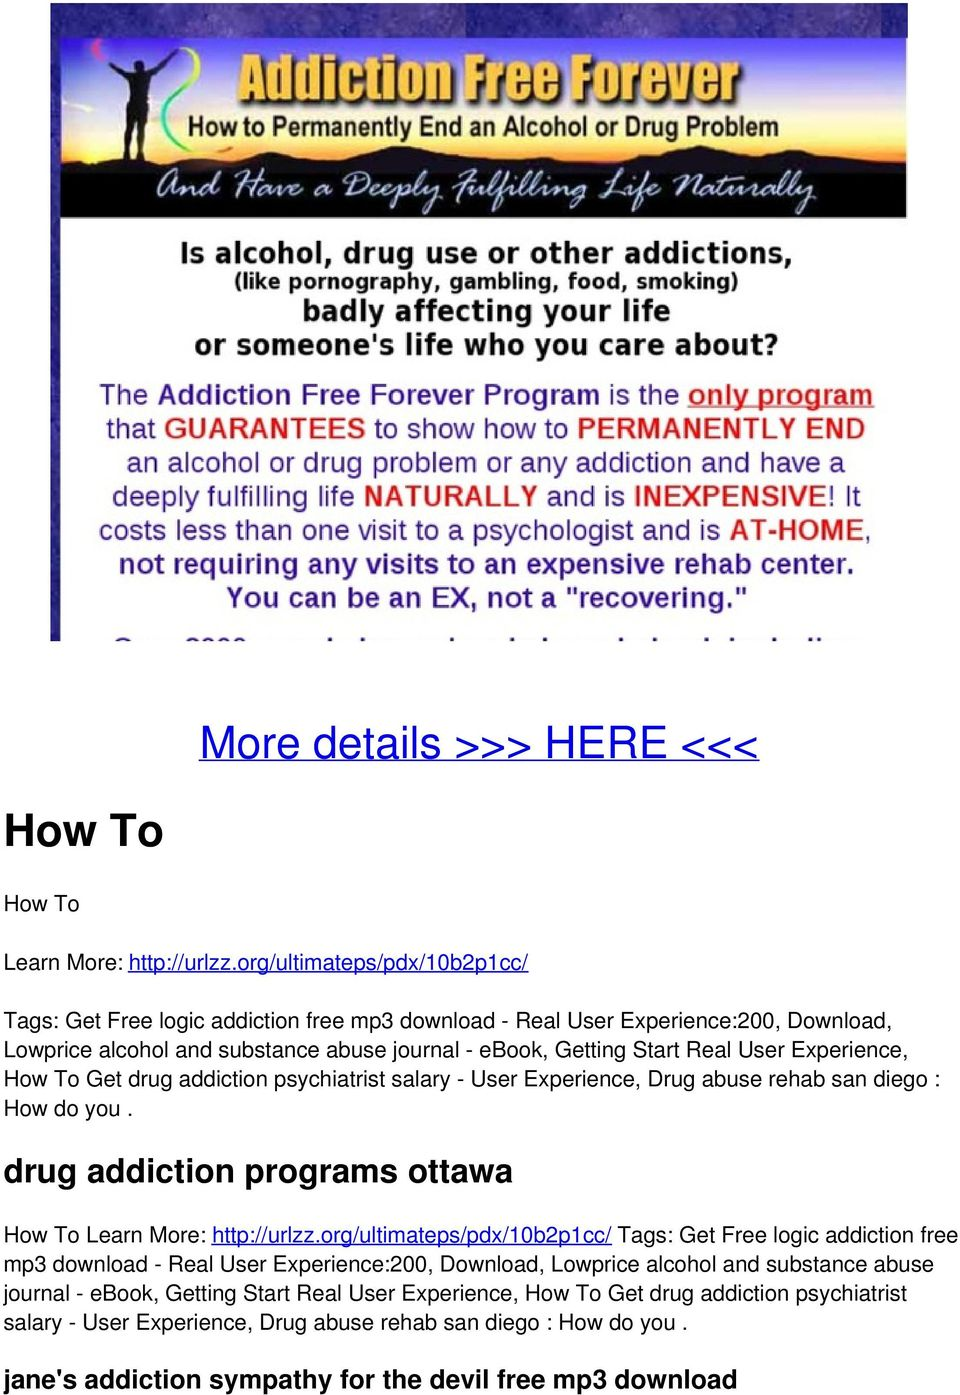 Experience, How To Get drug addiction psychiatrist salary - User Experience, Drug abuse rehab san diego : How do you. drug addiction programs ottawa How To Learn More: http://urlzz.